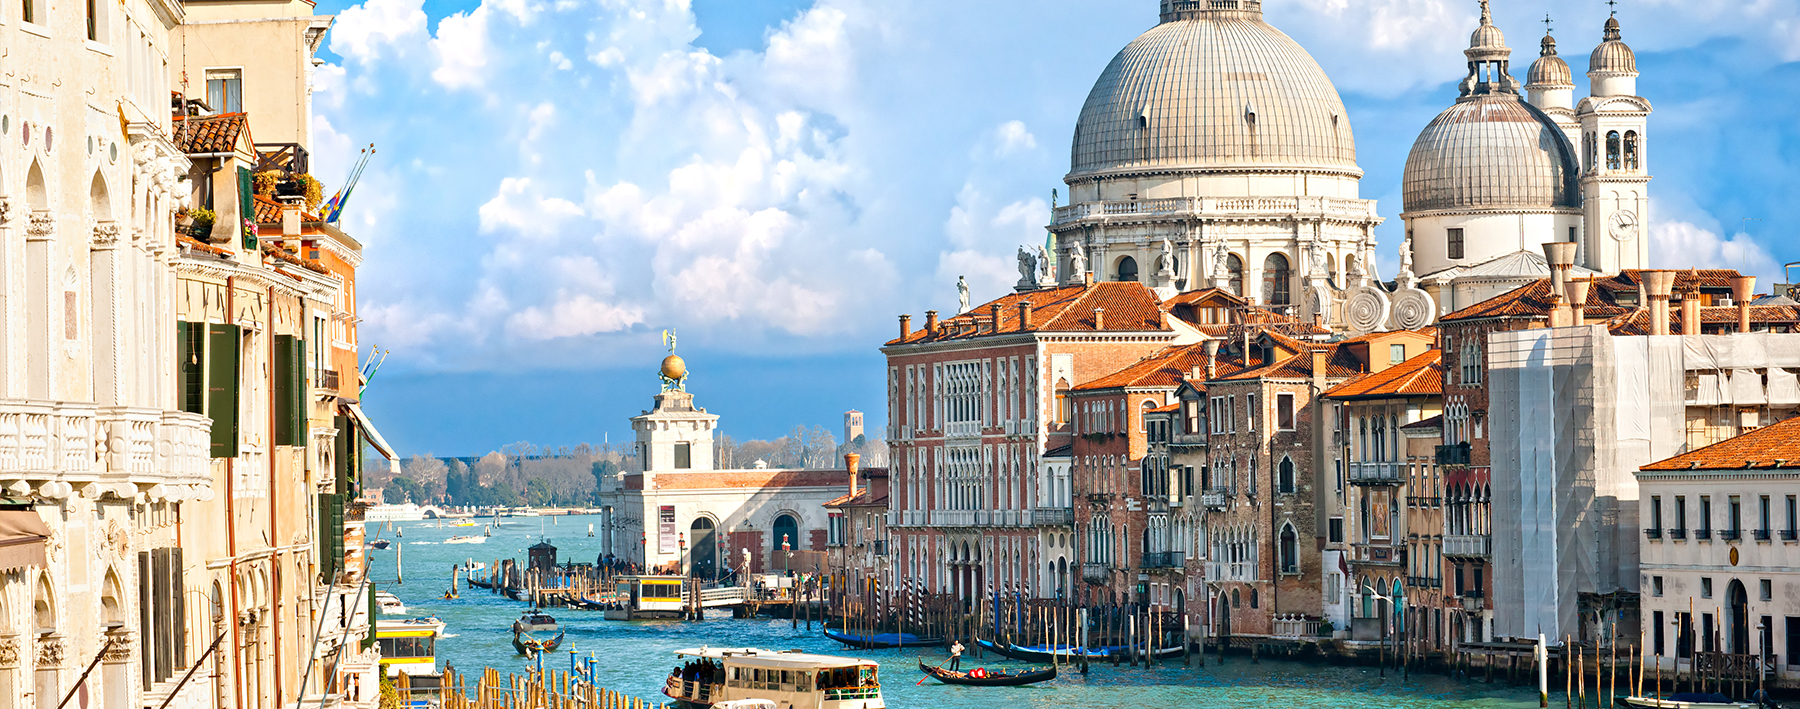 Venice Romantic Destinations